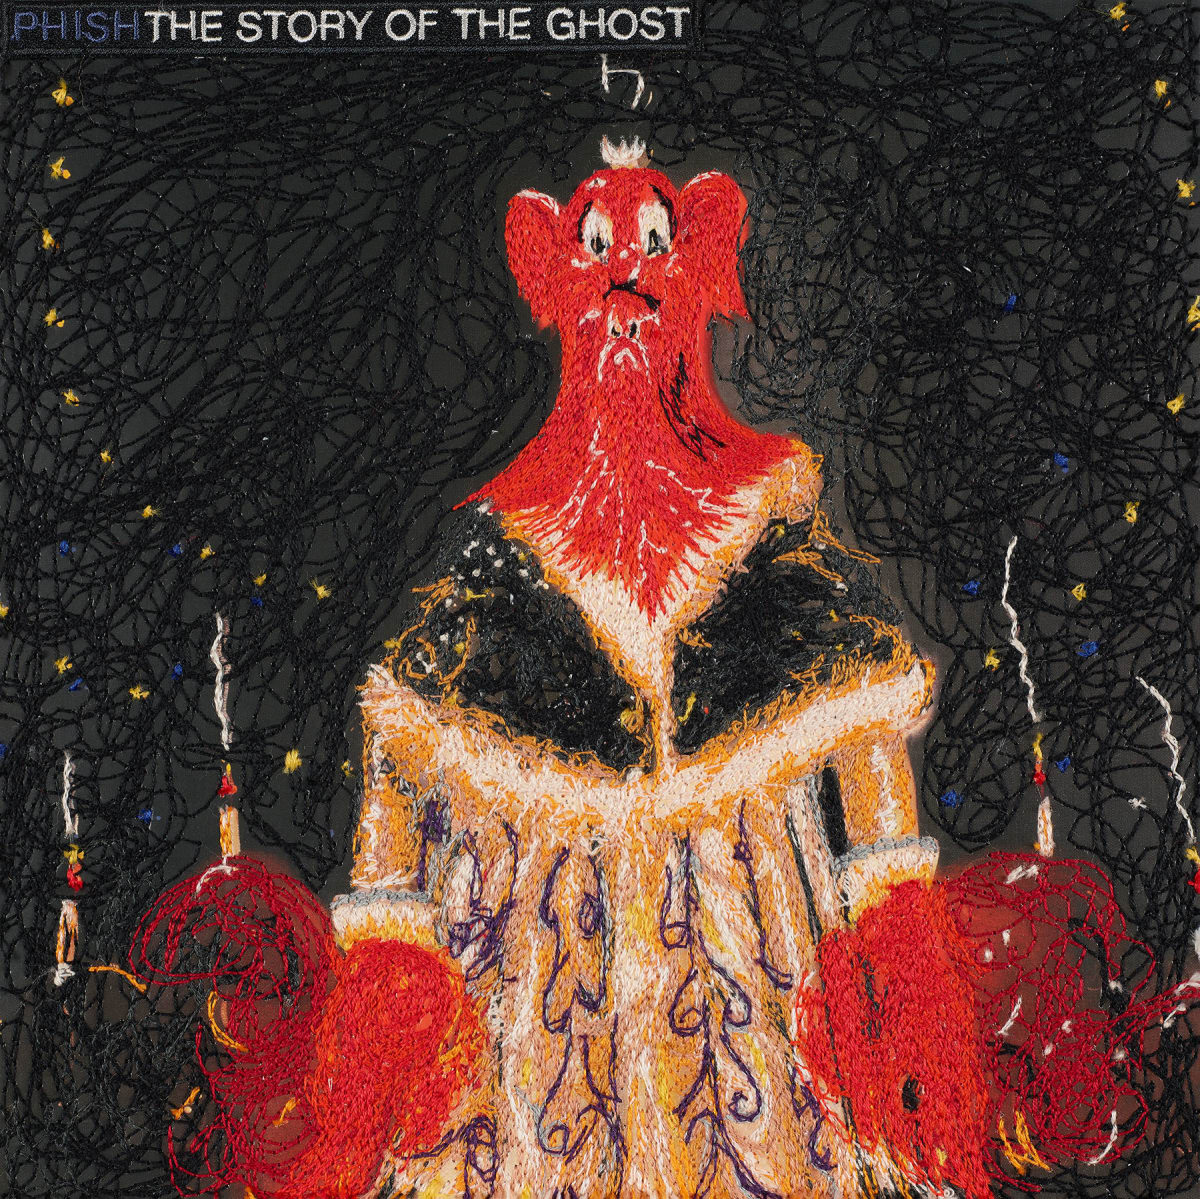 Stephen Wilson, The Story of the Ghost, Phish, 2019